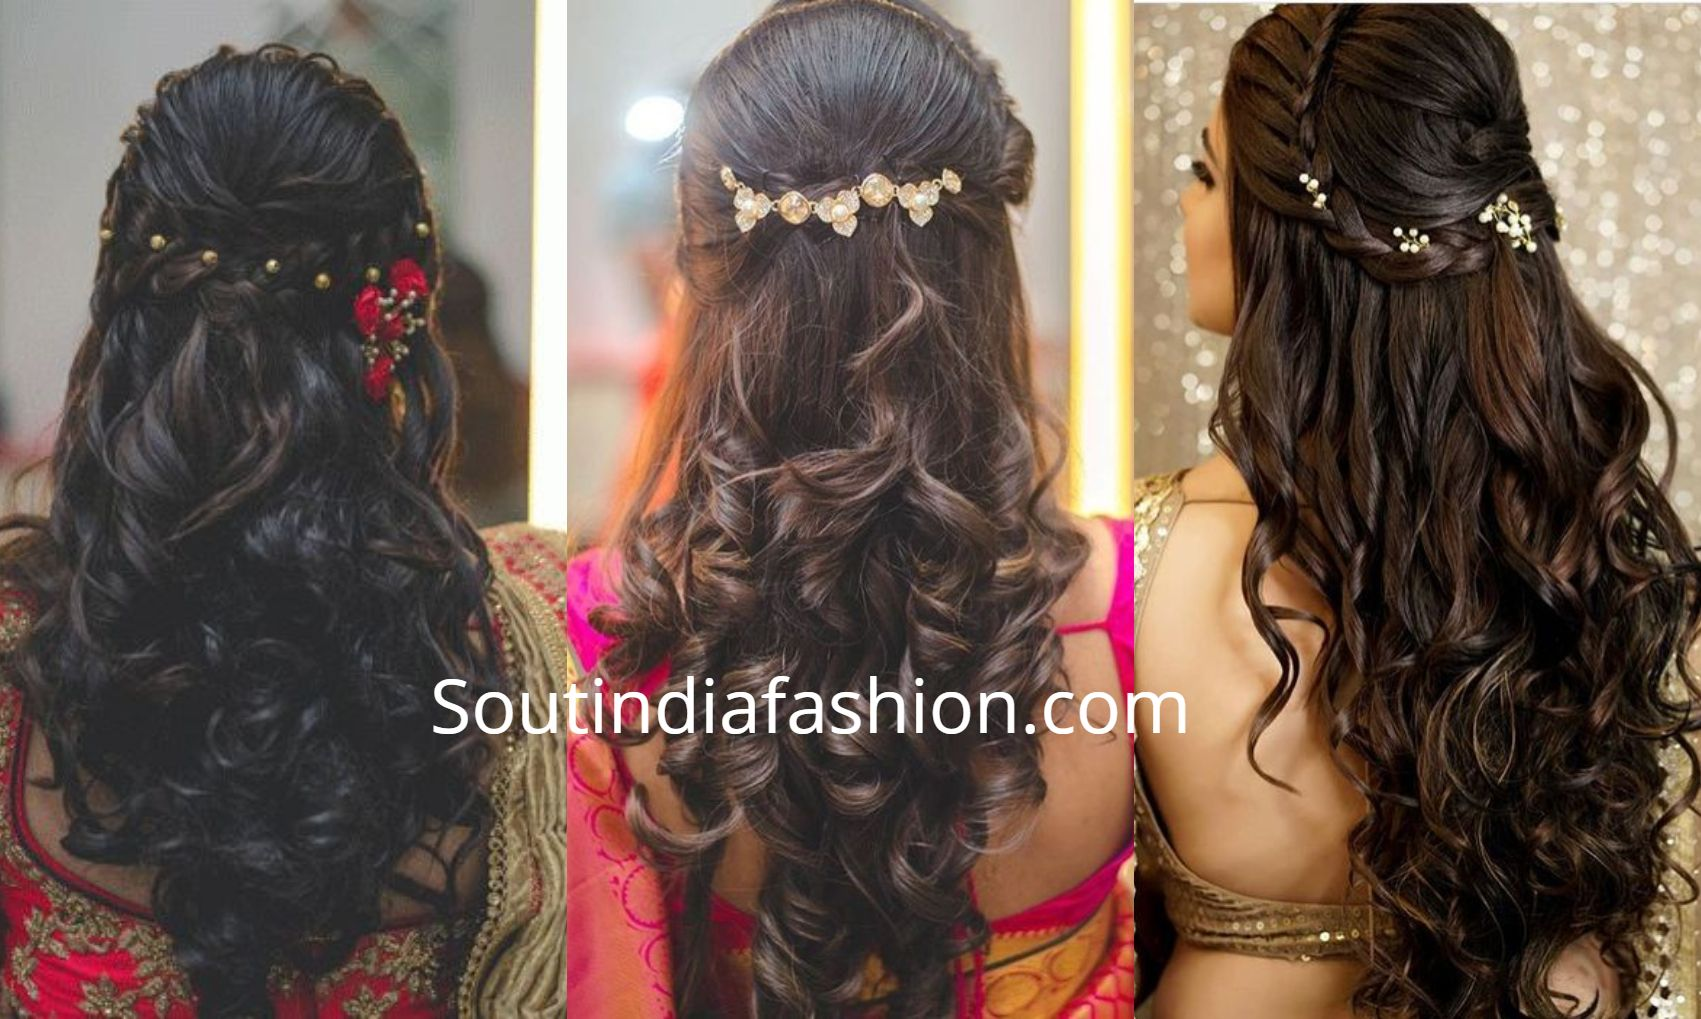 Top 10 South Indian Bridal Hairstyles For Weddings Engagement Etc Bride Hairstyles Indian Bridal Hairstyles Wedding Reception Hairstyles